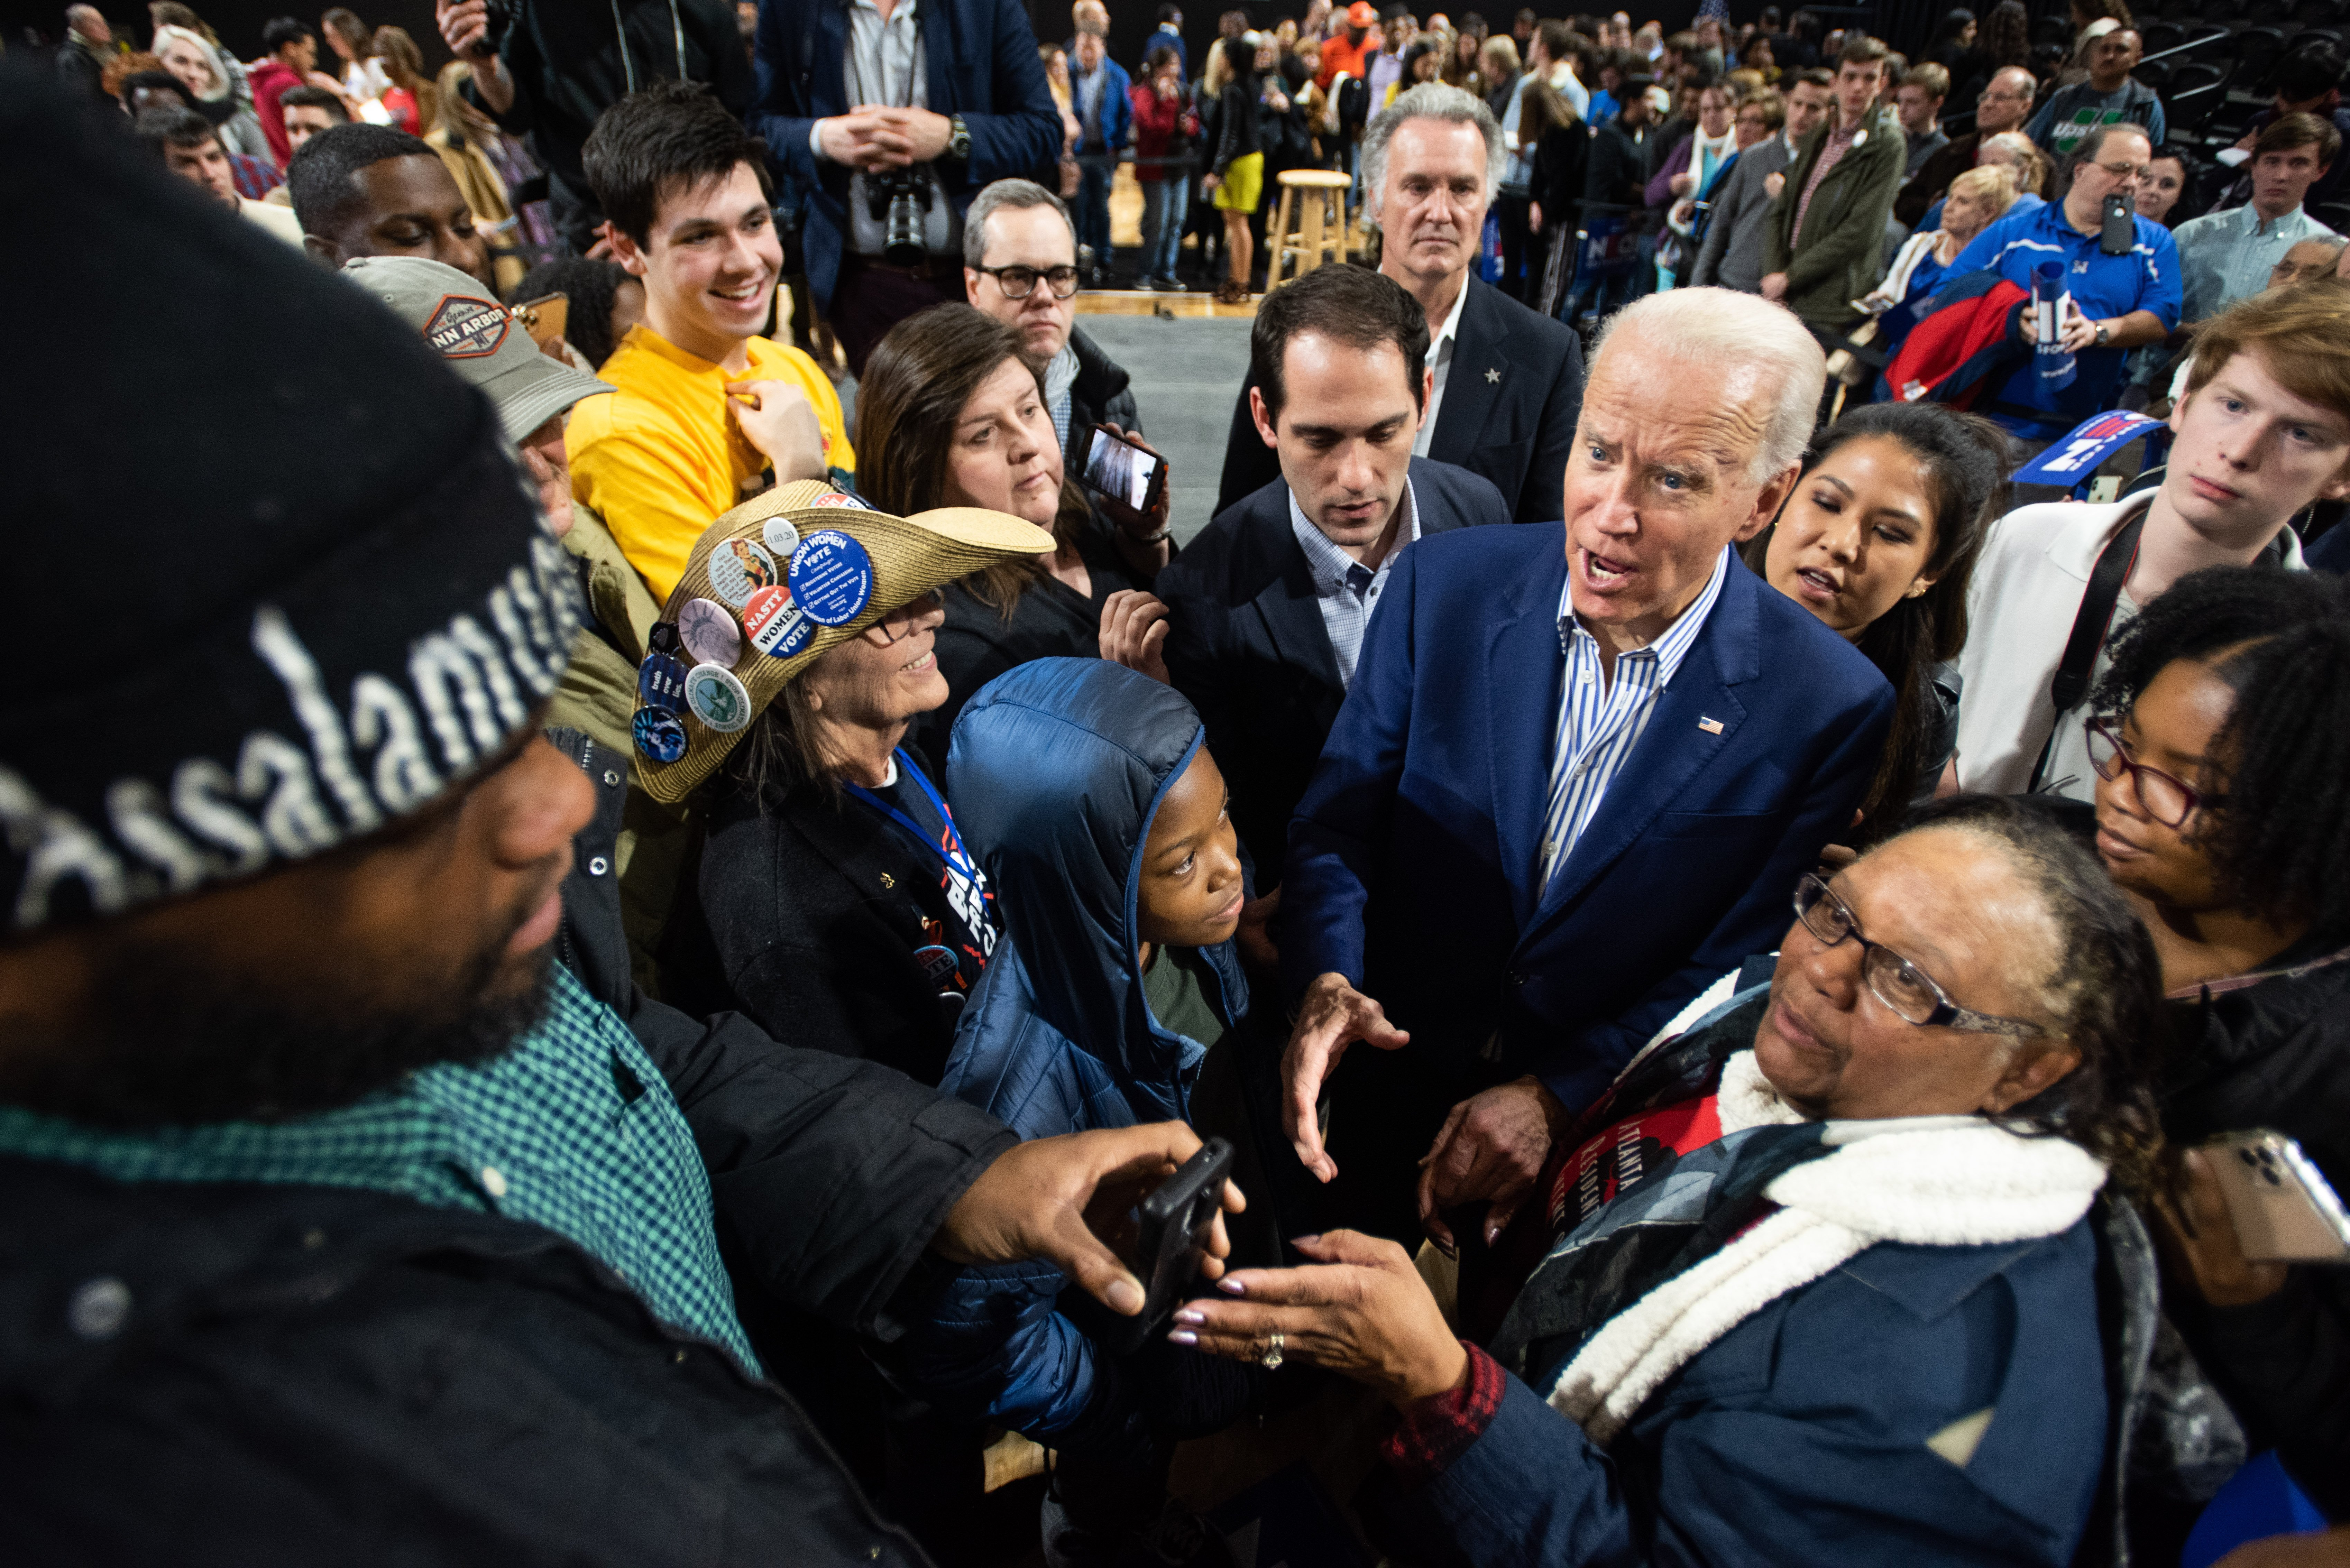 SPARTANBURG, SC - FEBRUARY 28: Democratic presidential candidate former Vice President Joe Biden responds to a man asking for a photograph at a campaign event at Wofford University February 28, 2020 in Spartanburg, South Carolina. South Carolinians will vote in the Democratic presidential primary tomorrow. (Photo by Sean Rayford/Getty Images)